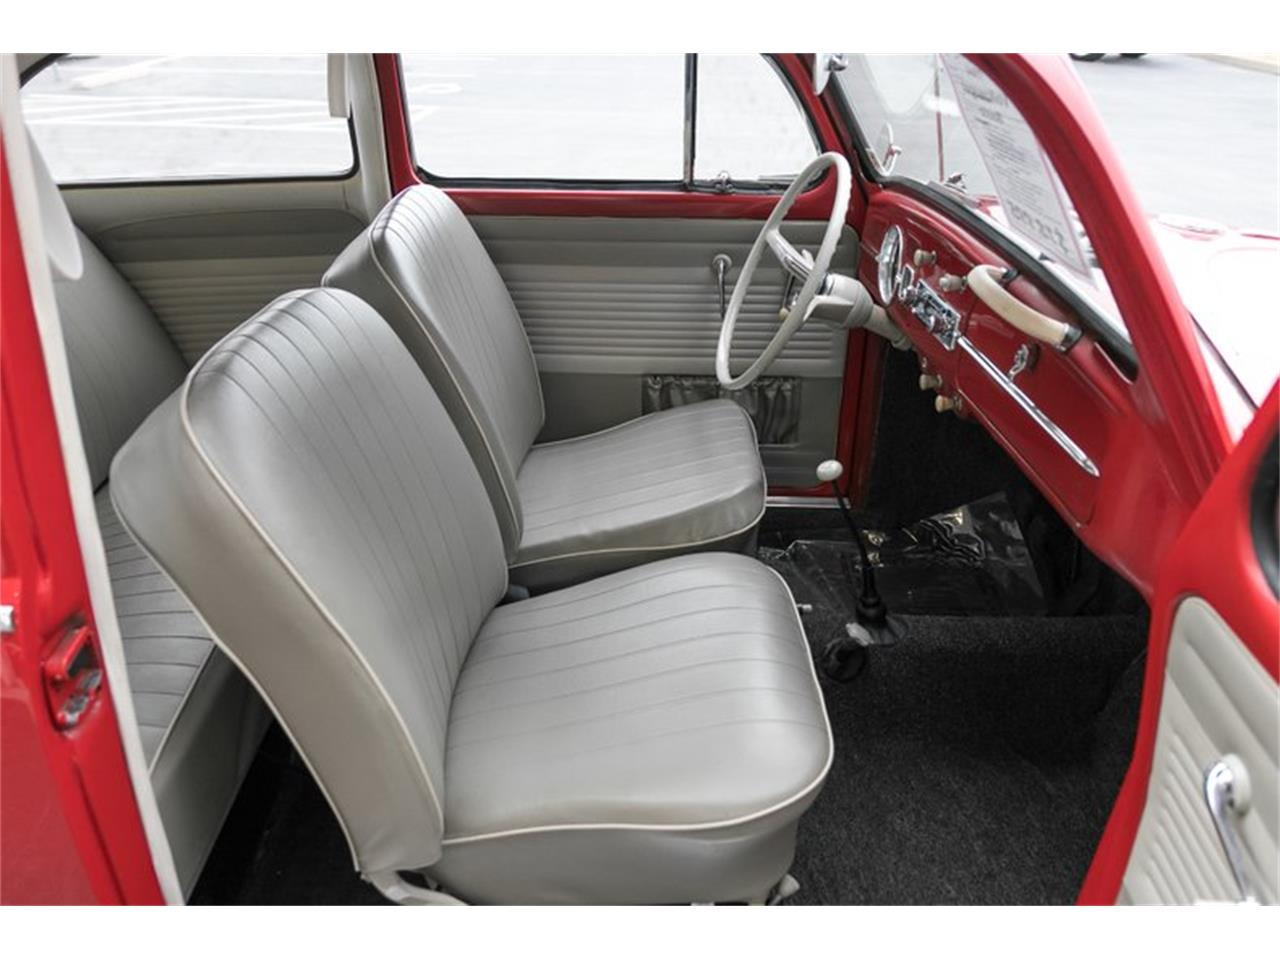 Large Picture of '64 Beetle located in St. Charles Missouri - $17,500.00 - MTLO